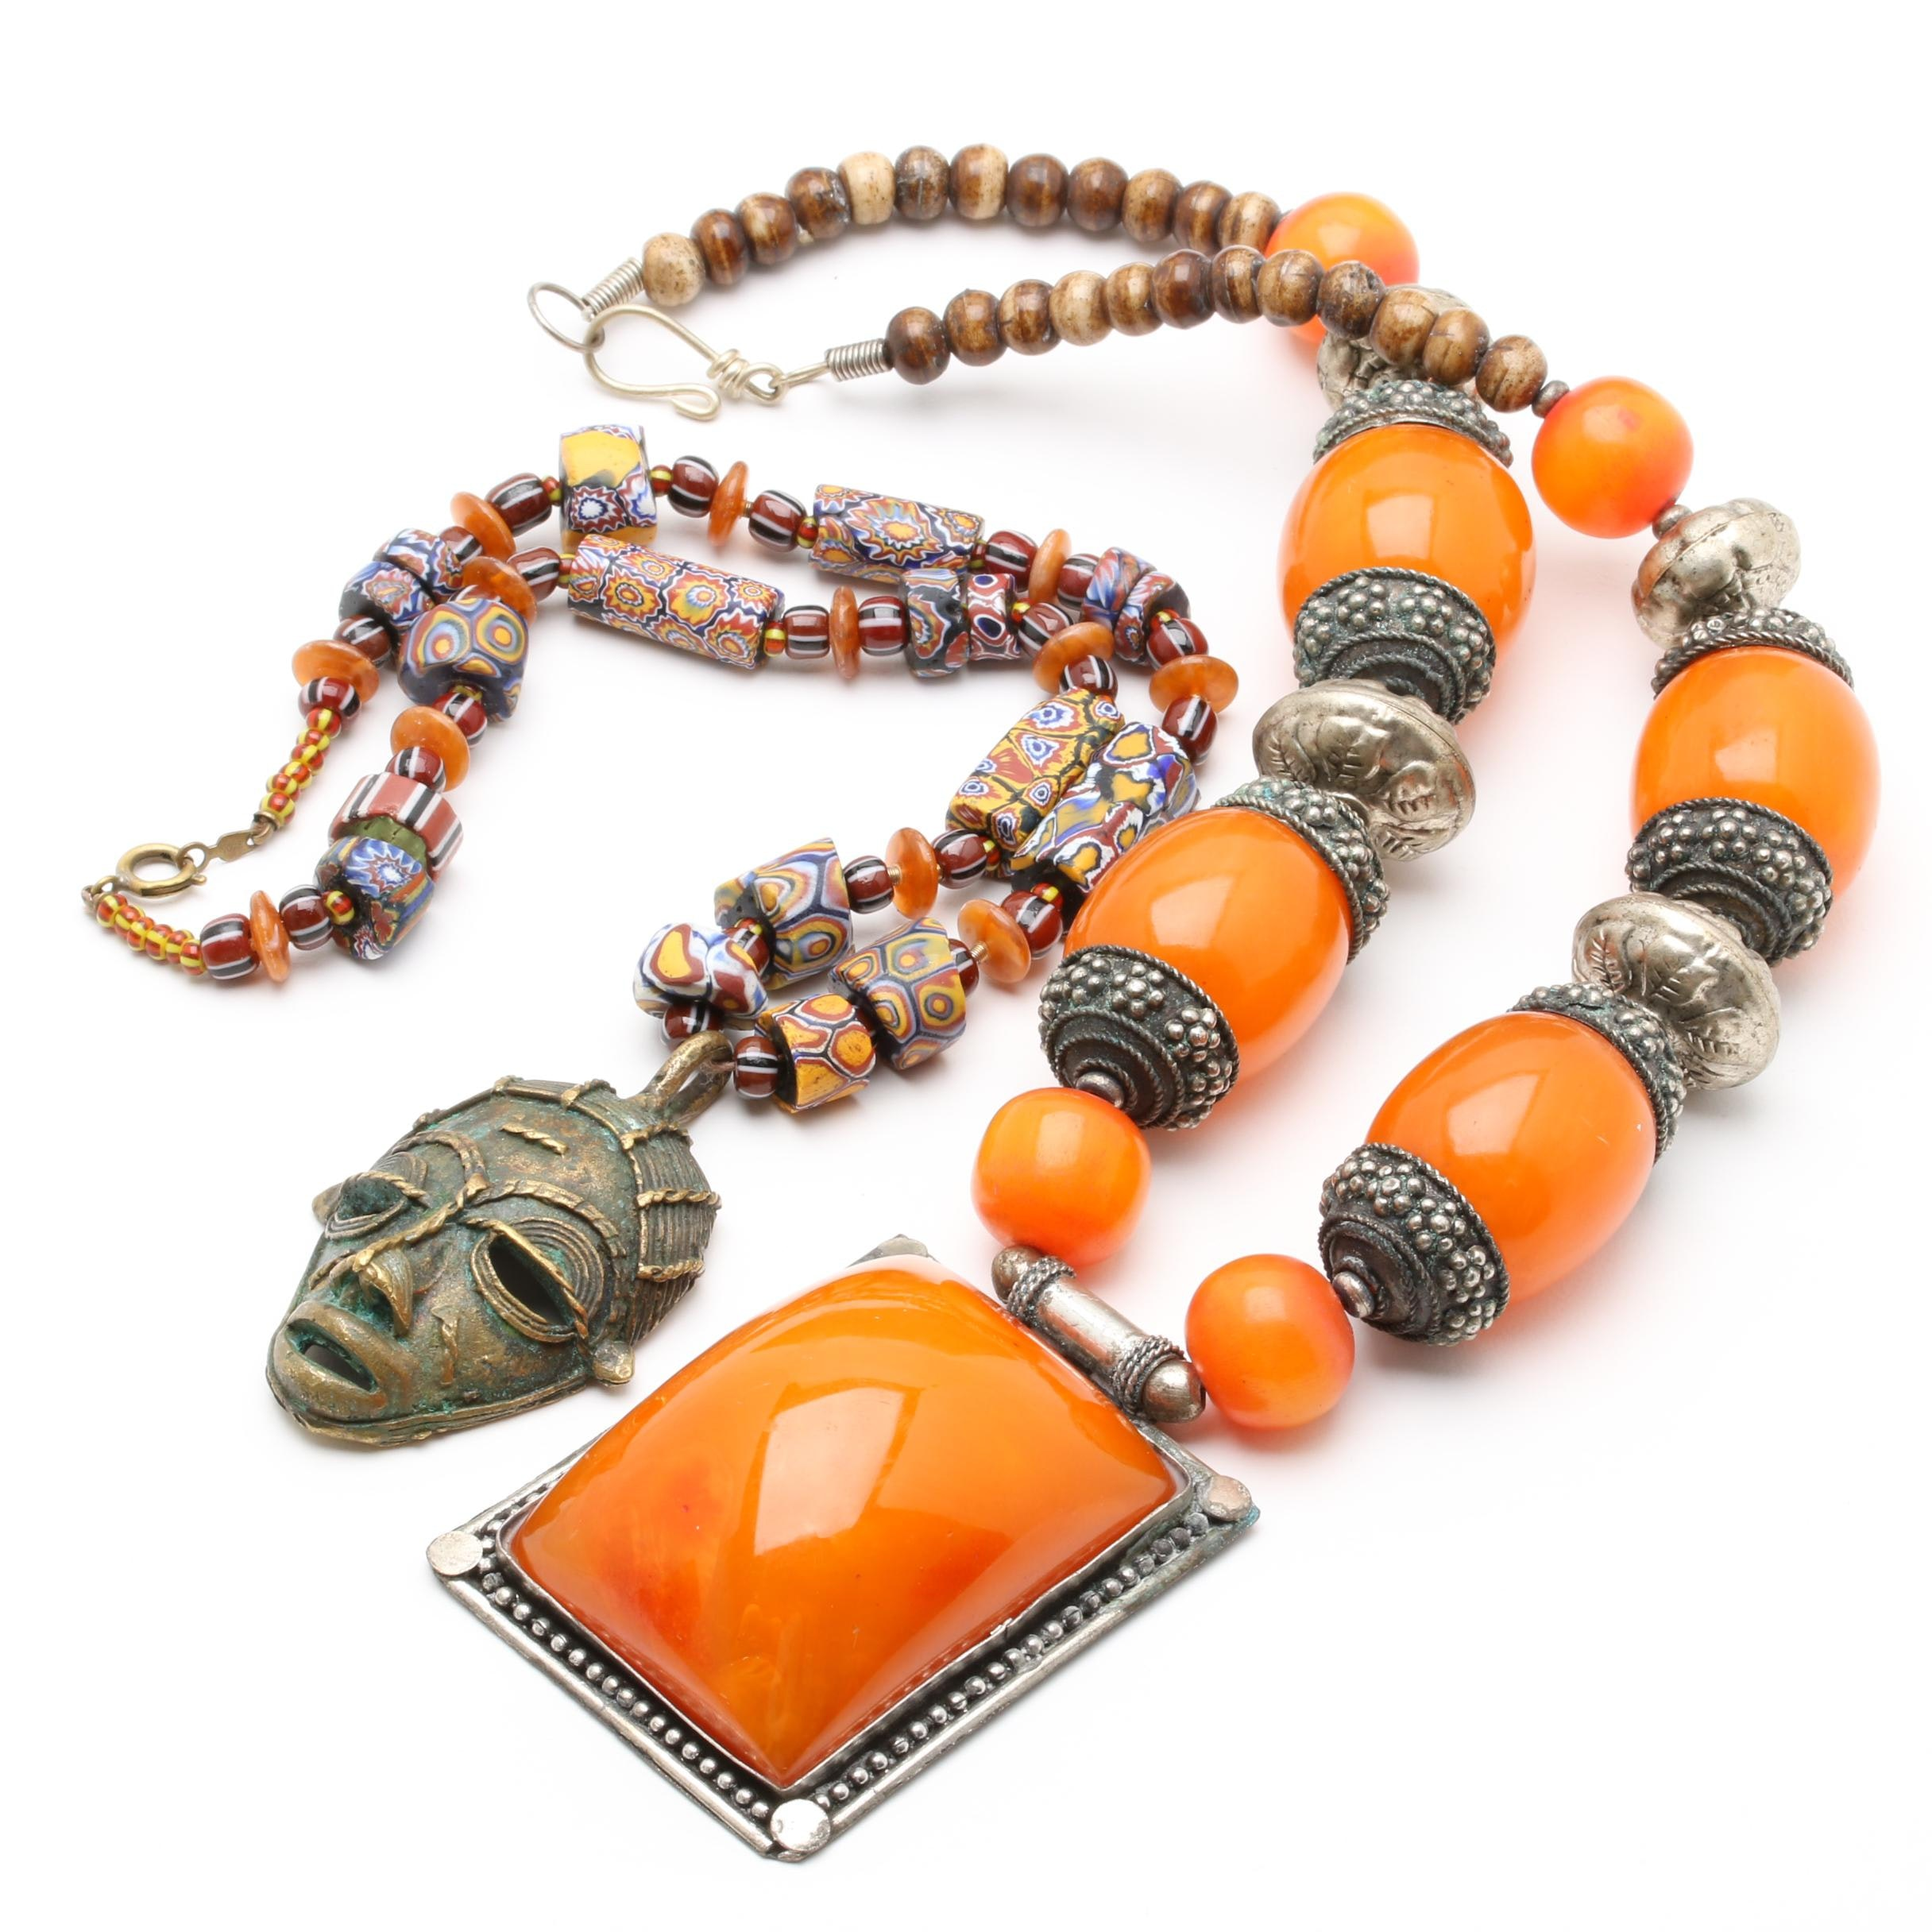 African Trade Bead and Amber Necklaces